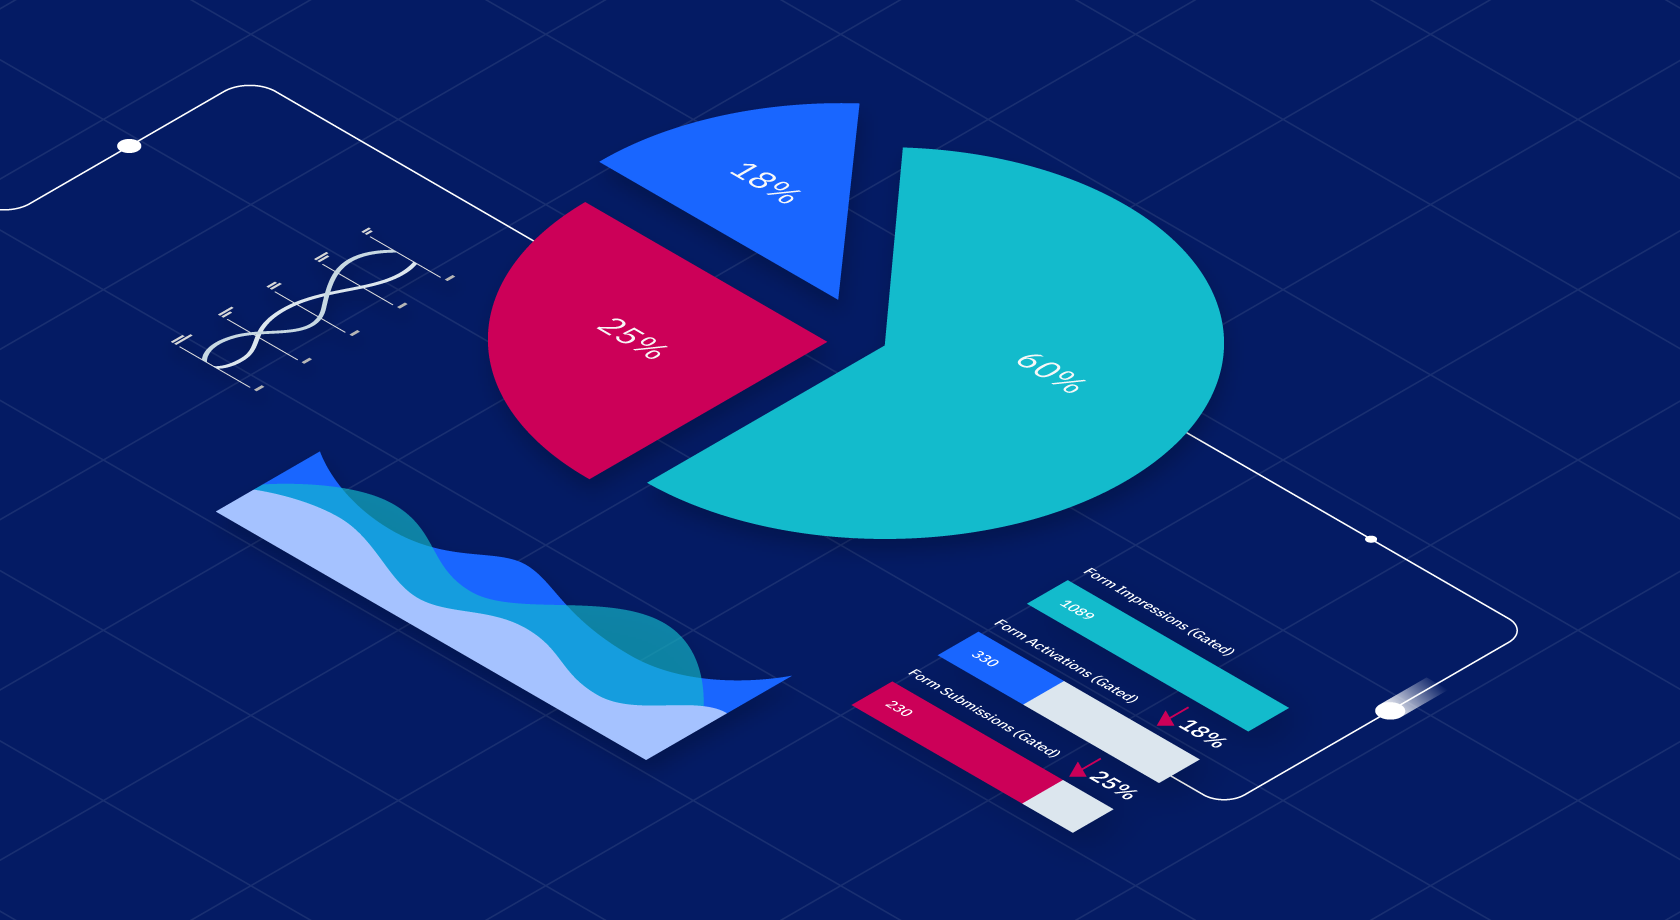 Graphs and charts that depict content metrics